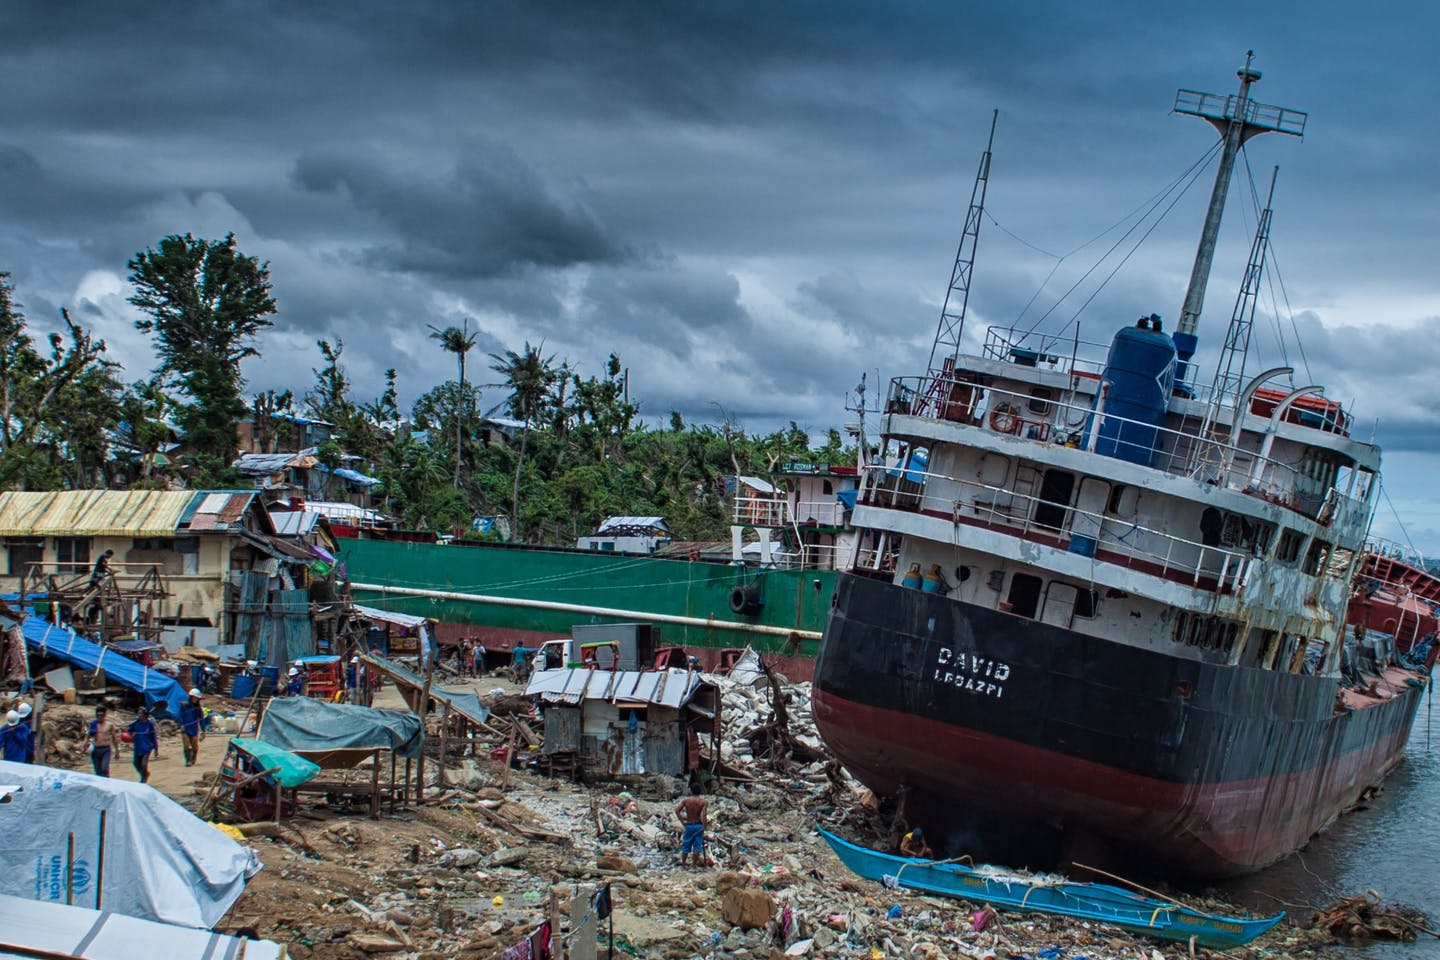 Tacloban after Typhoon Haiyan in 2014